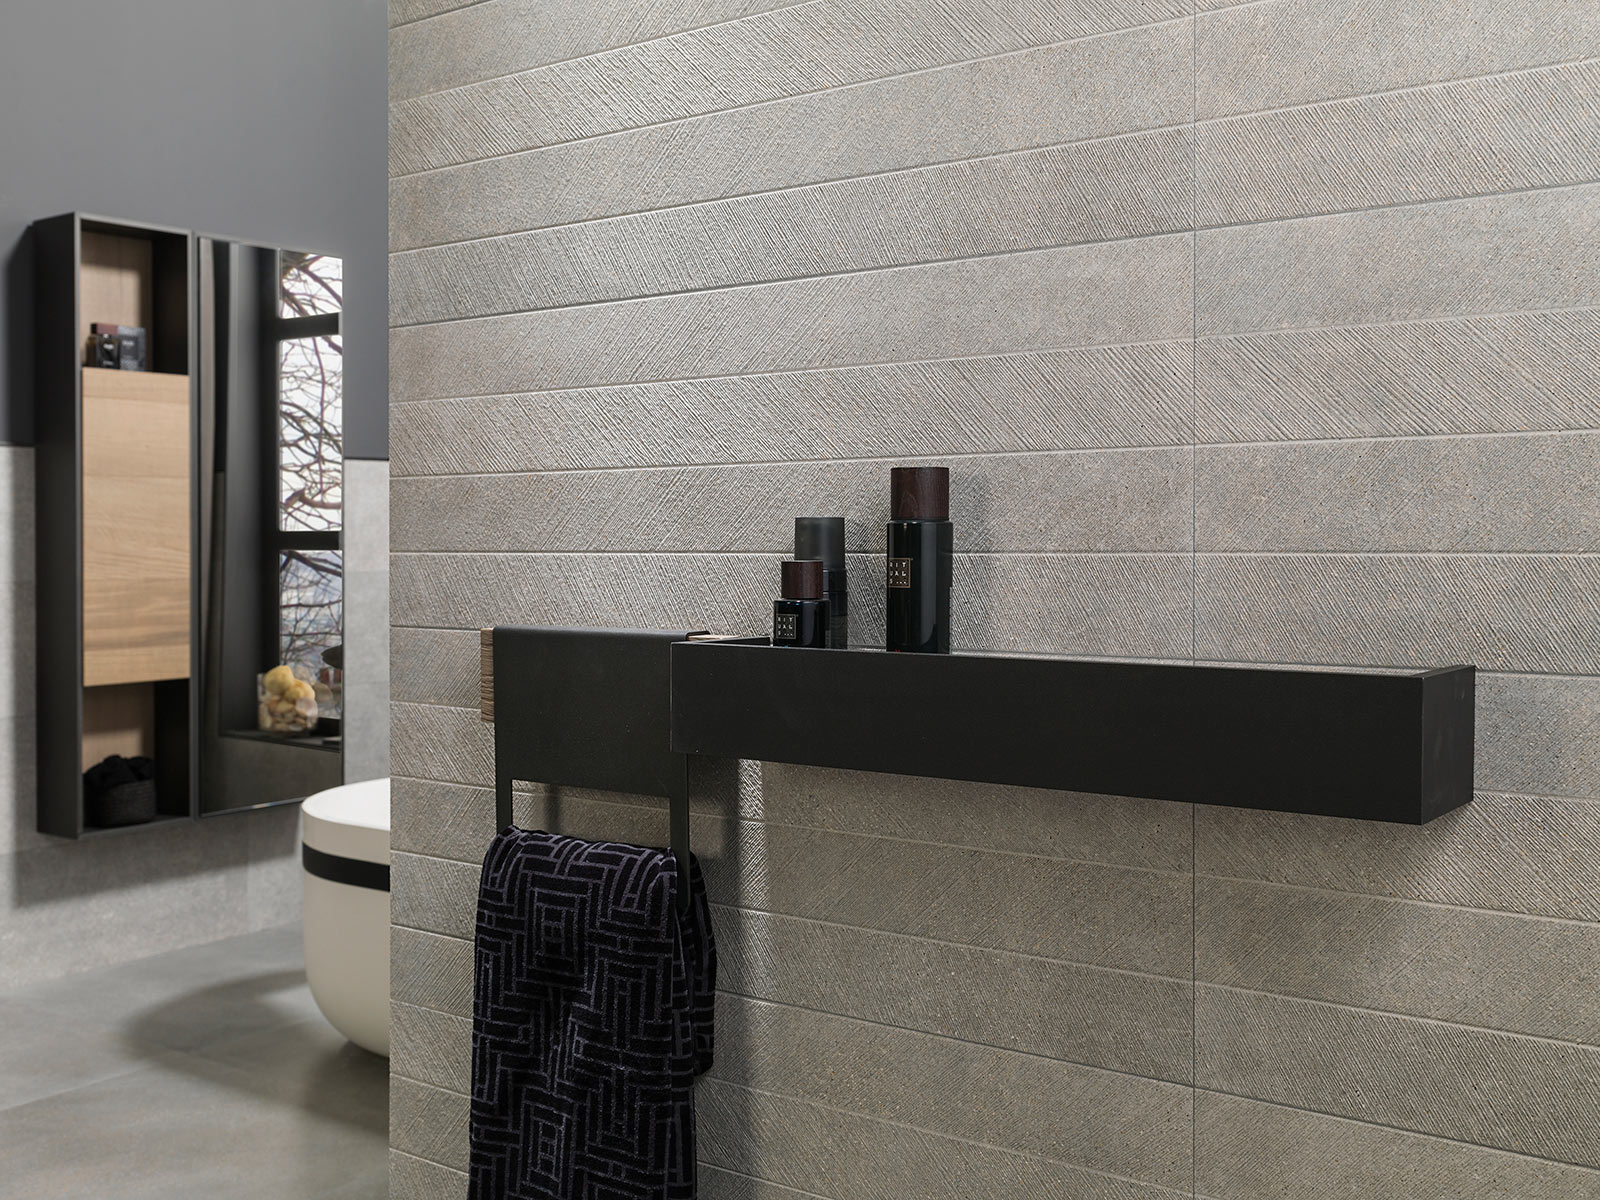 How to tile a wall 6